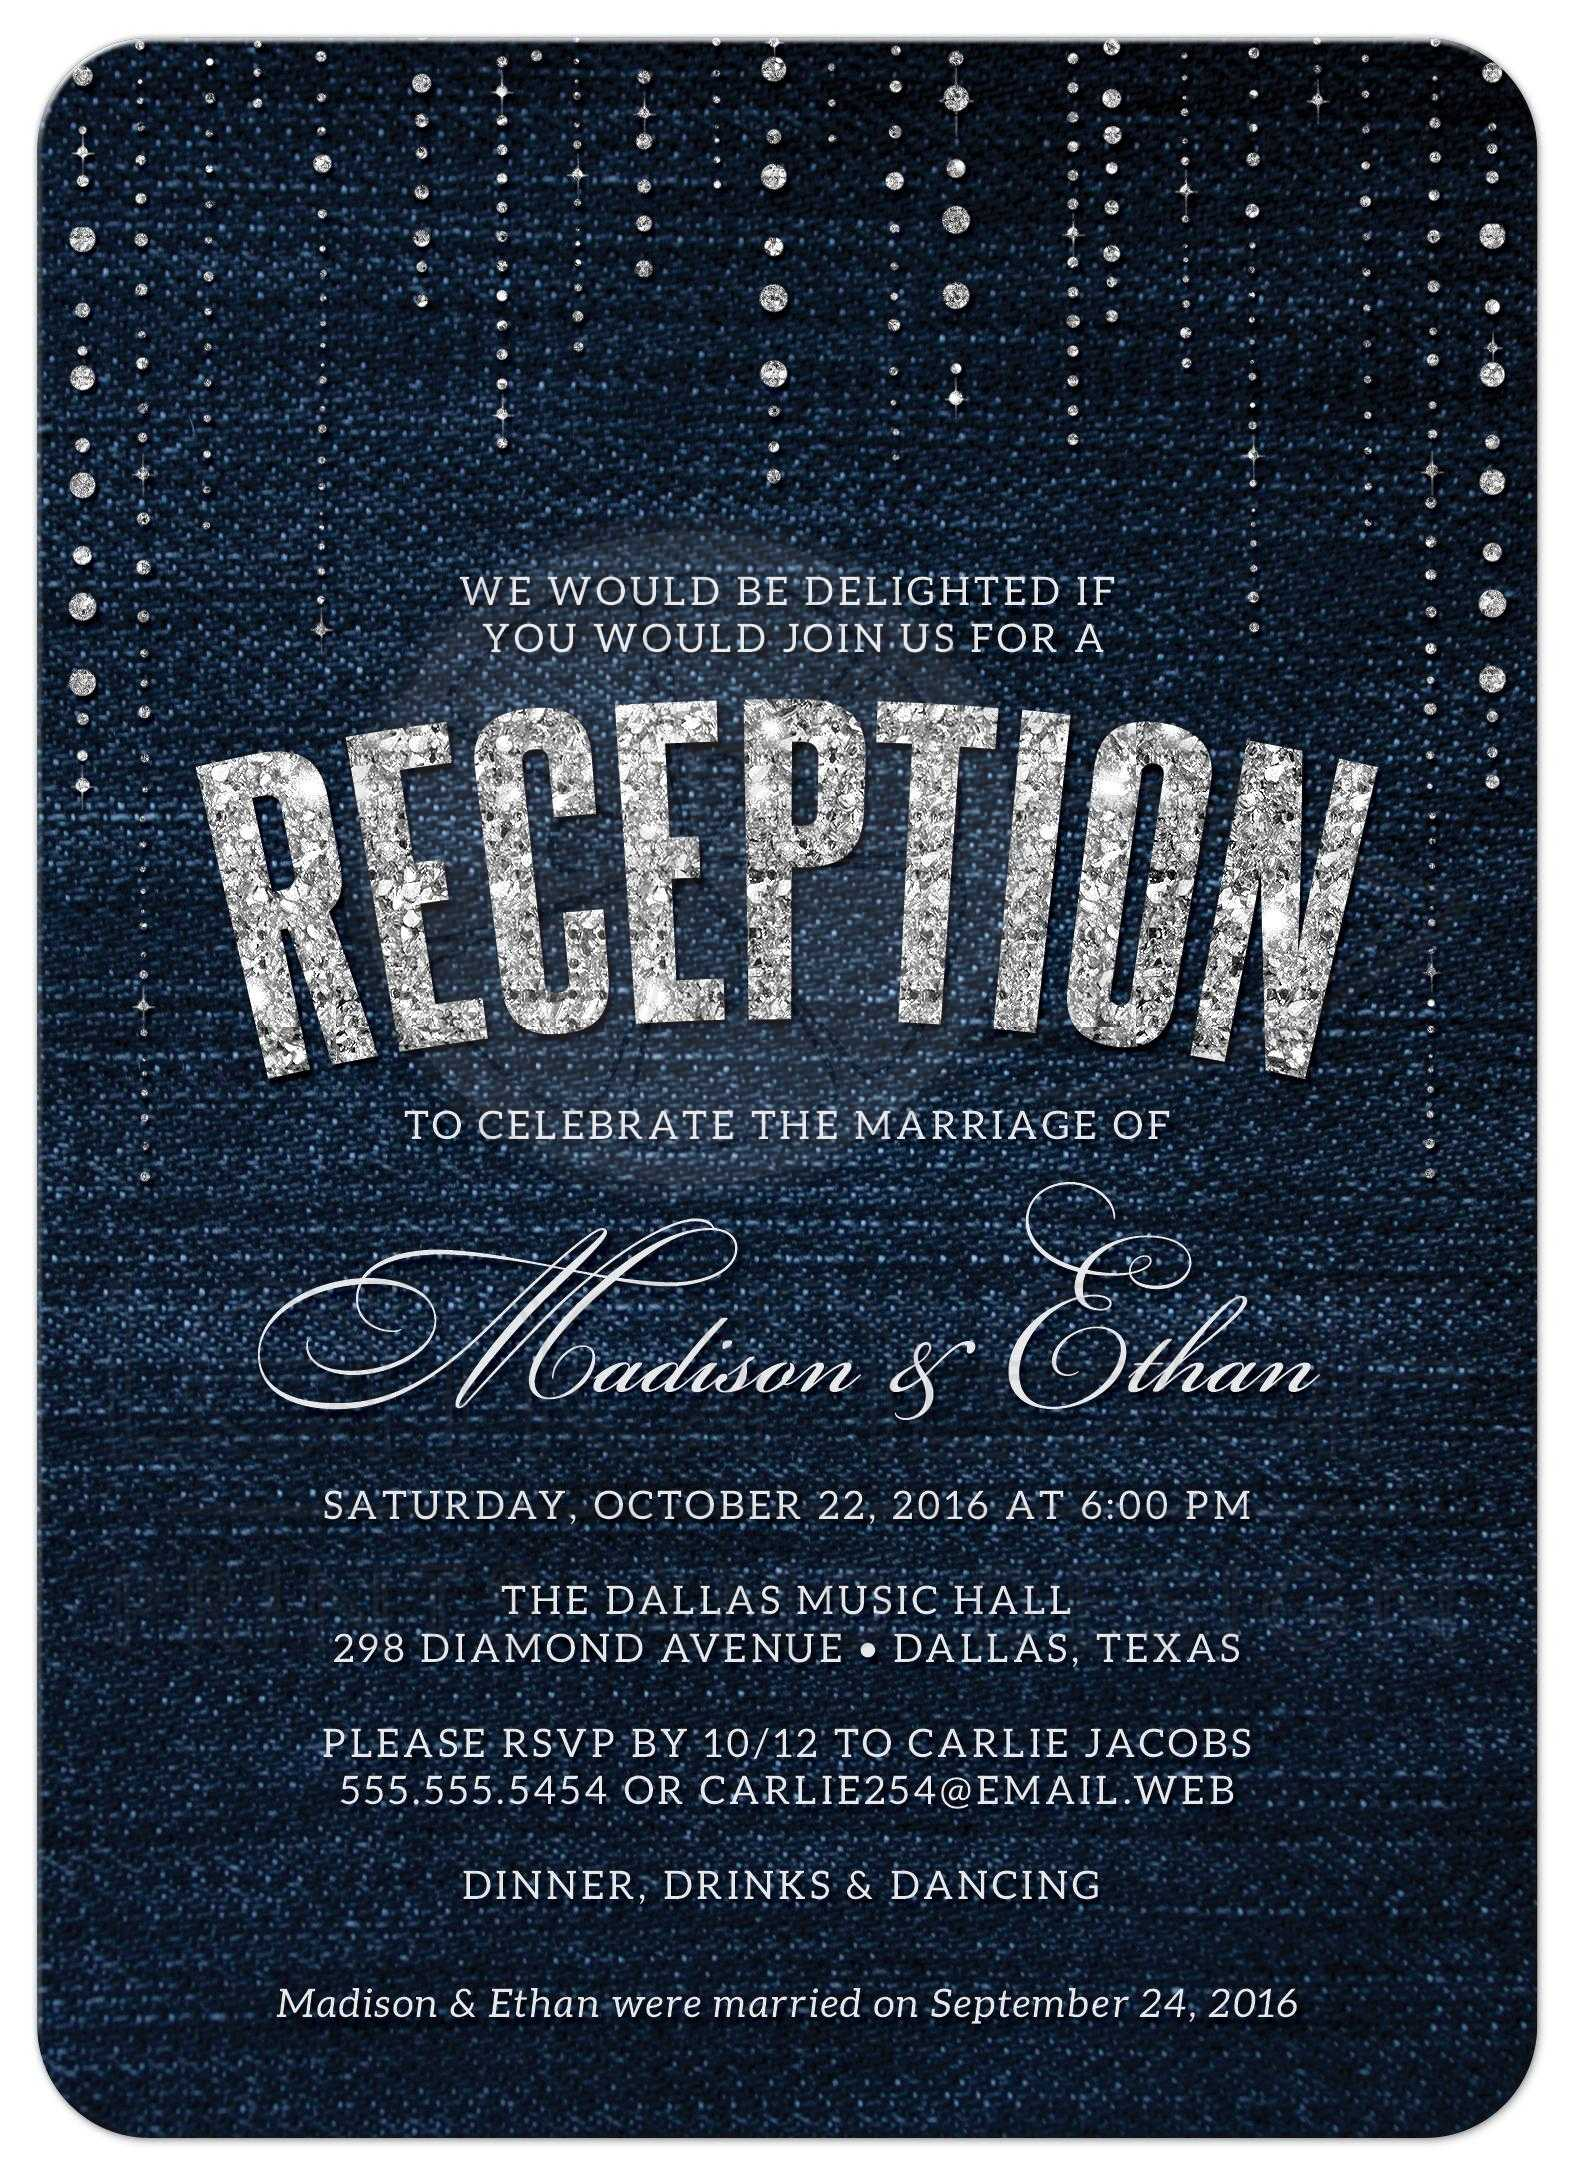 Post wedding reception only invitations denim diamonds denim diamonds post wedding reception invitations front junglespirit Choice Image